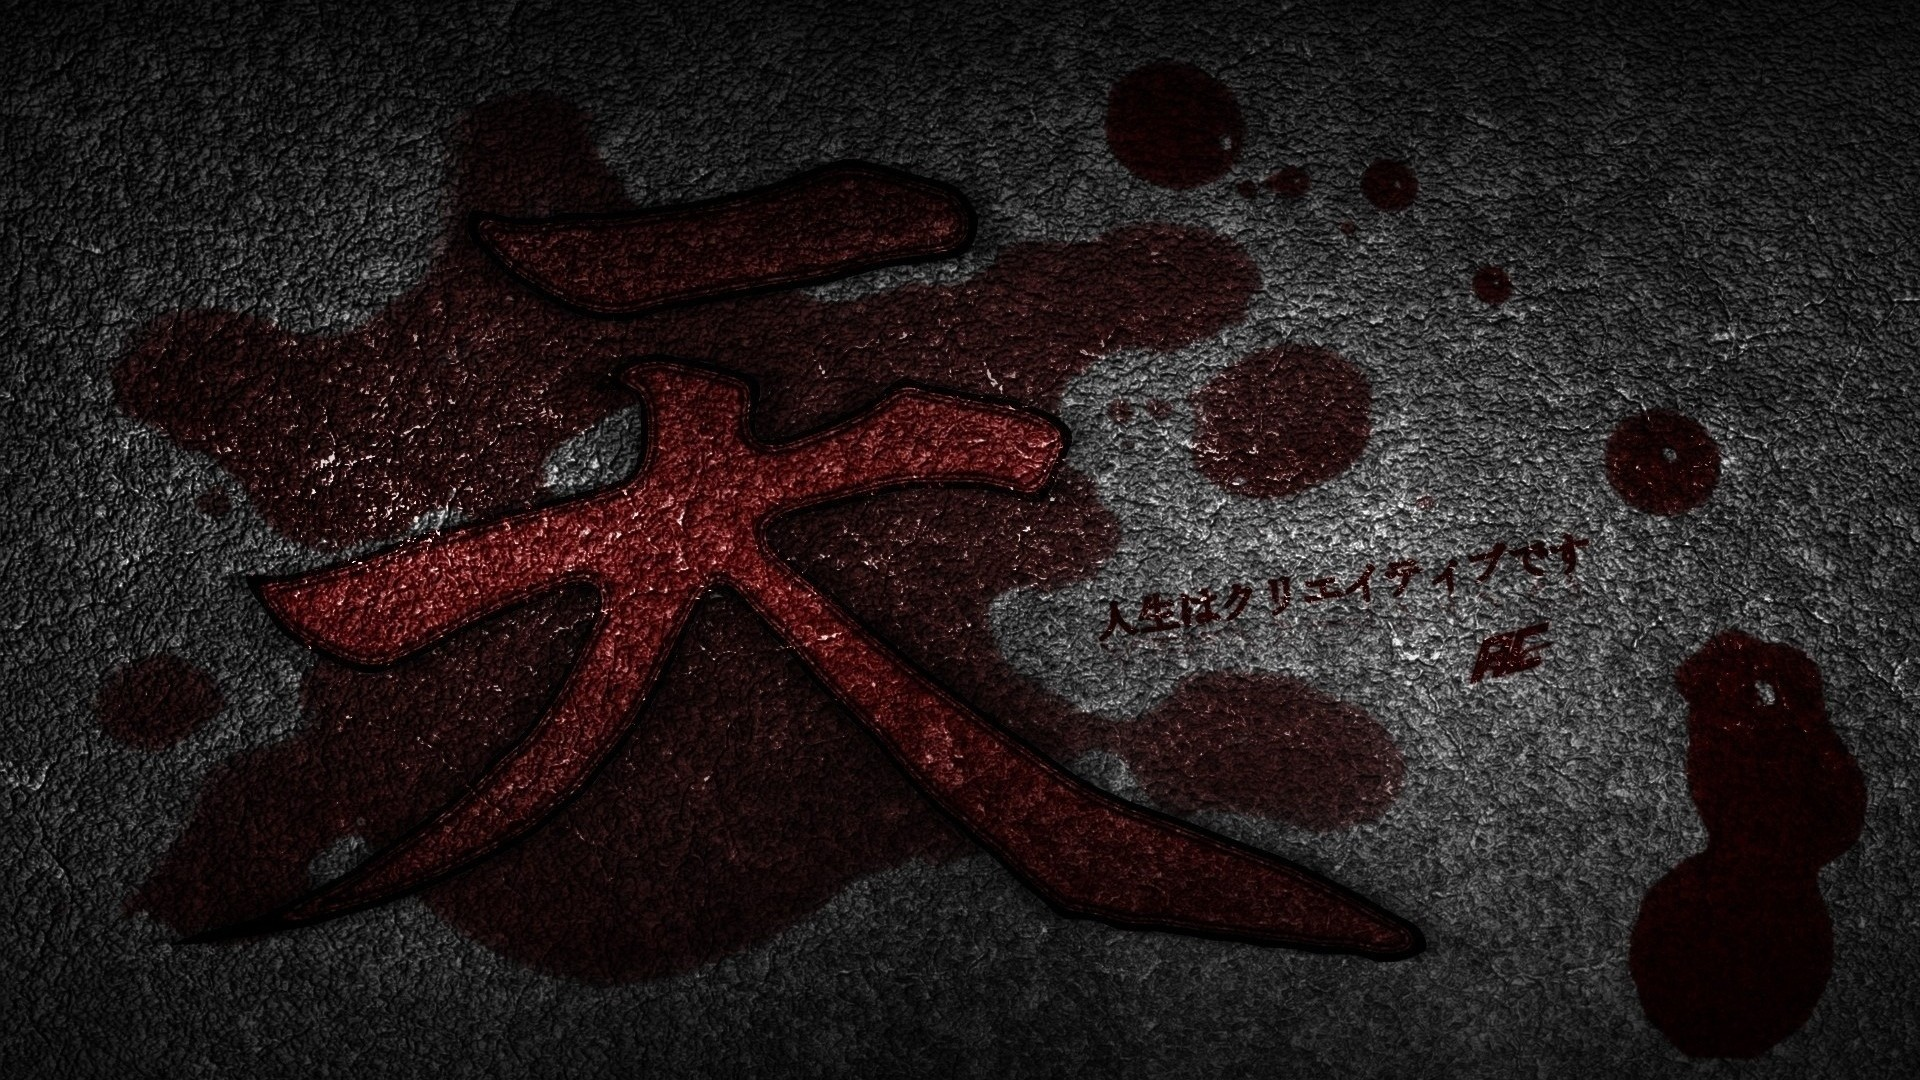 1920x1080  Wallpaper chinese, letter, red, black, drops